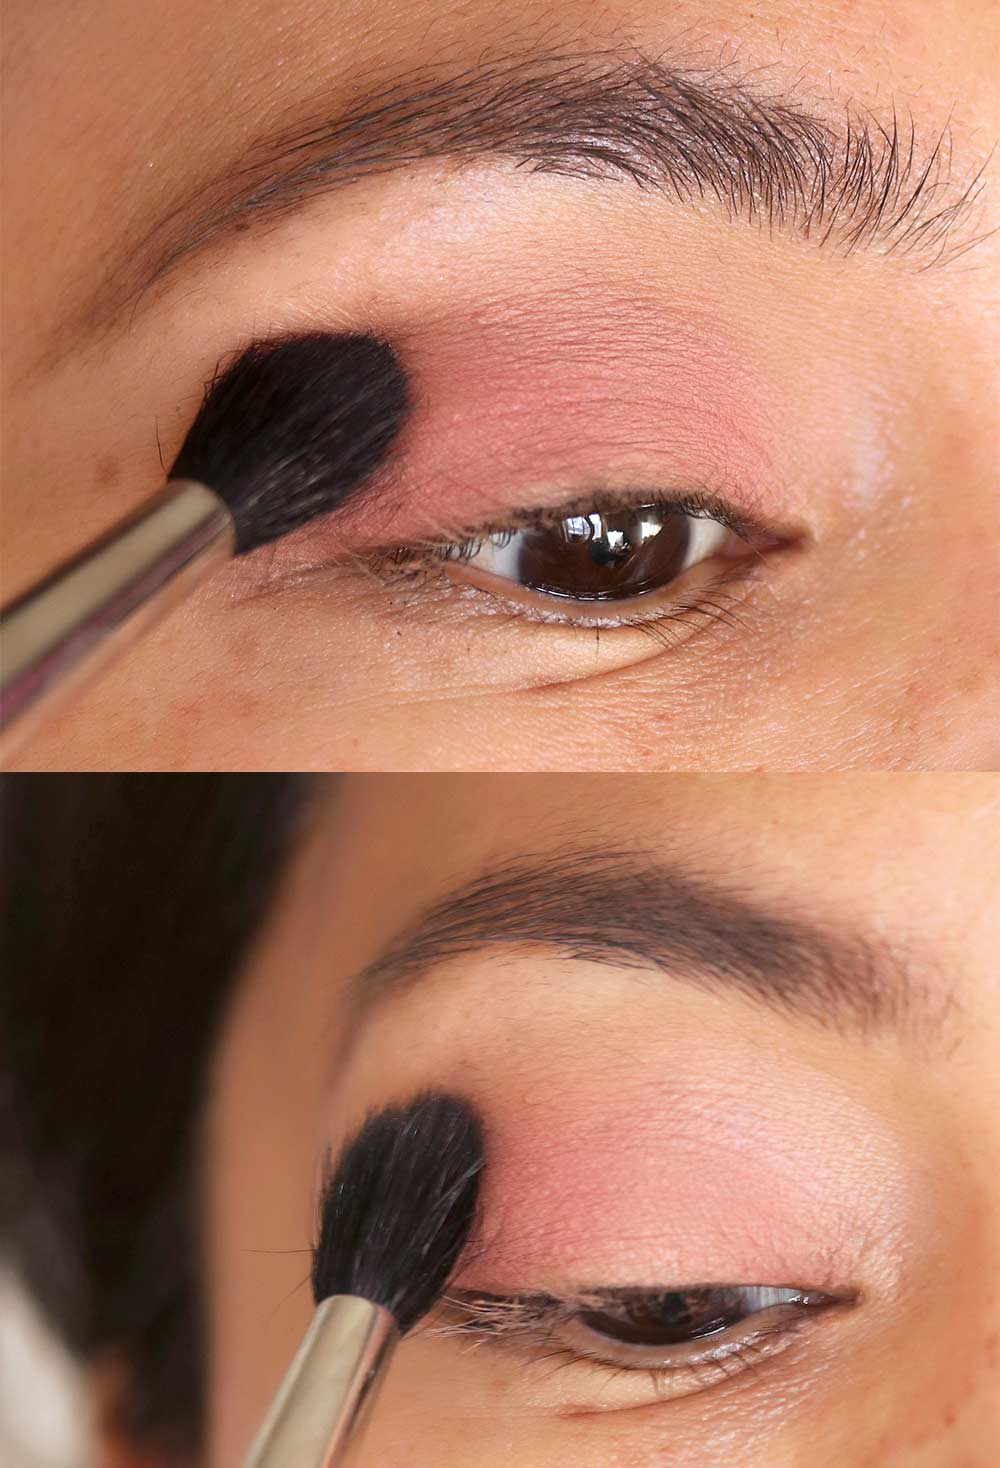 New years eve makeup tutorial choice image any tutorial examples fast and flirty valentines day makeup tutorial a romantic romantic makeup tutorial mac lunar new year baditri Gallery